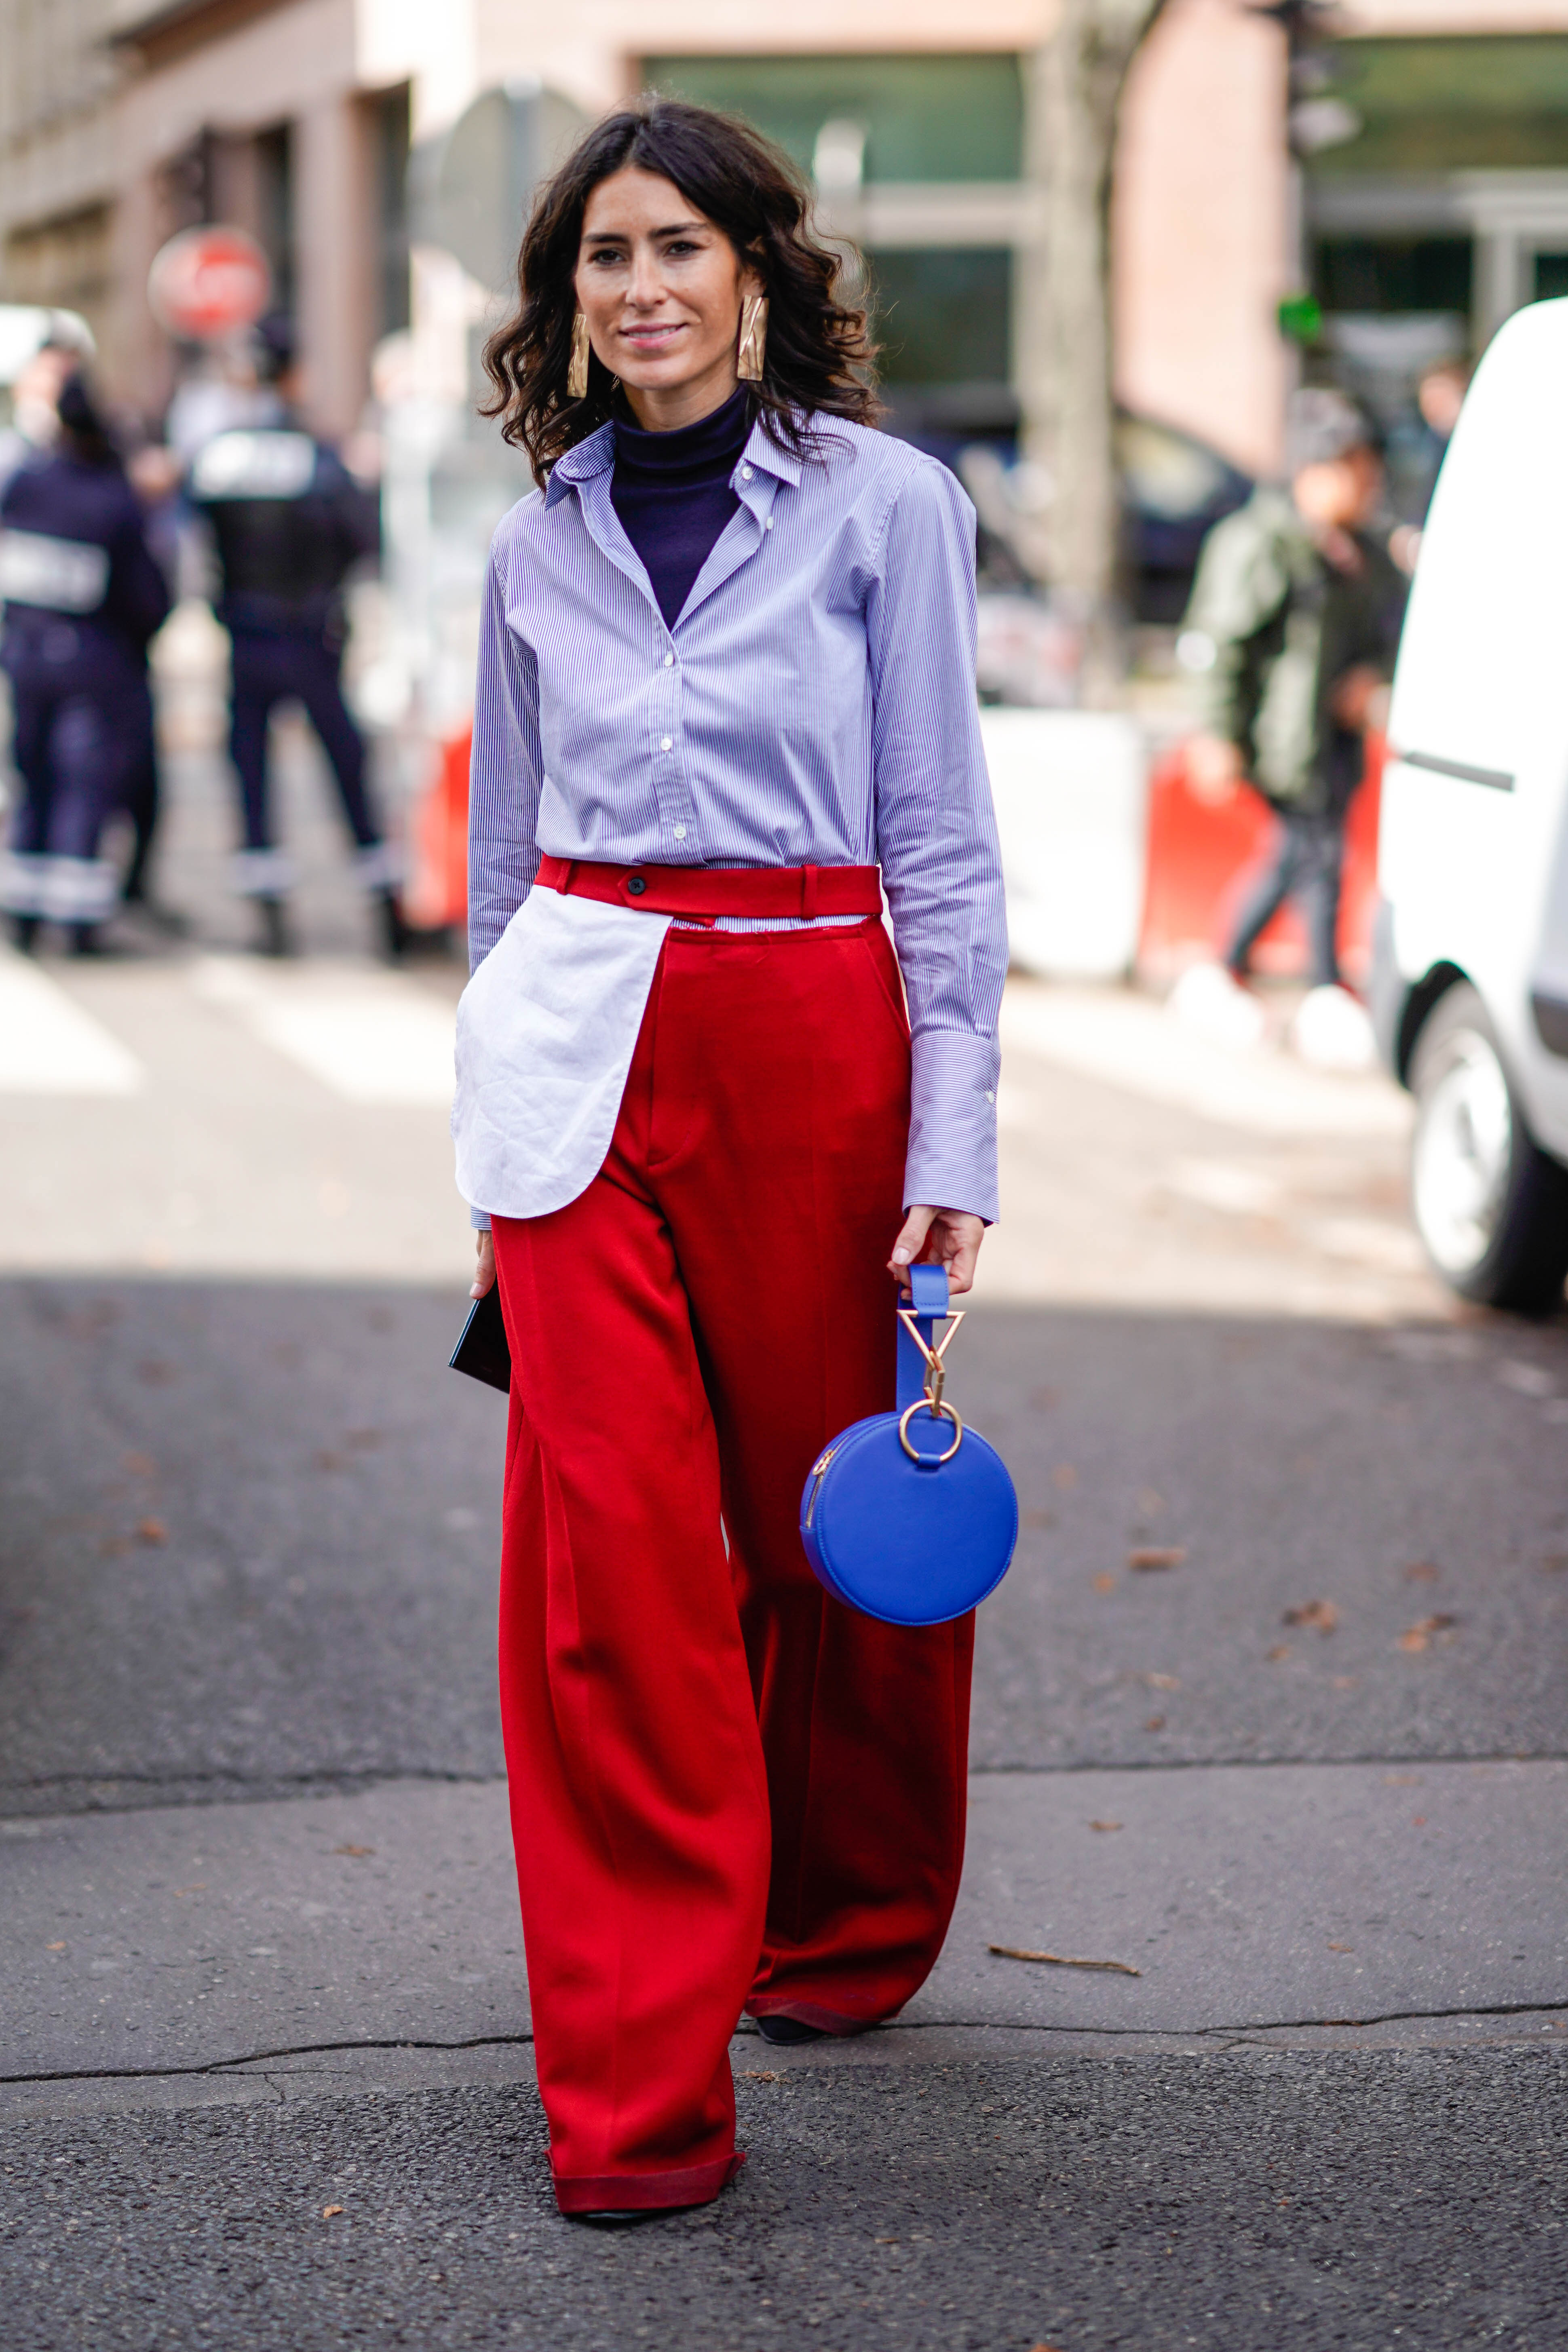 PARIS, FRANCE - OCTOBER 03: A guest wears a striped shirt, red pants, a blue bag, outside Moncler, during Paris Fashion Week Womenswear Spring/Summer 2018, on October 3, 2017 in Paris, France. (Photo by Edward Berthelot/Getty Images)